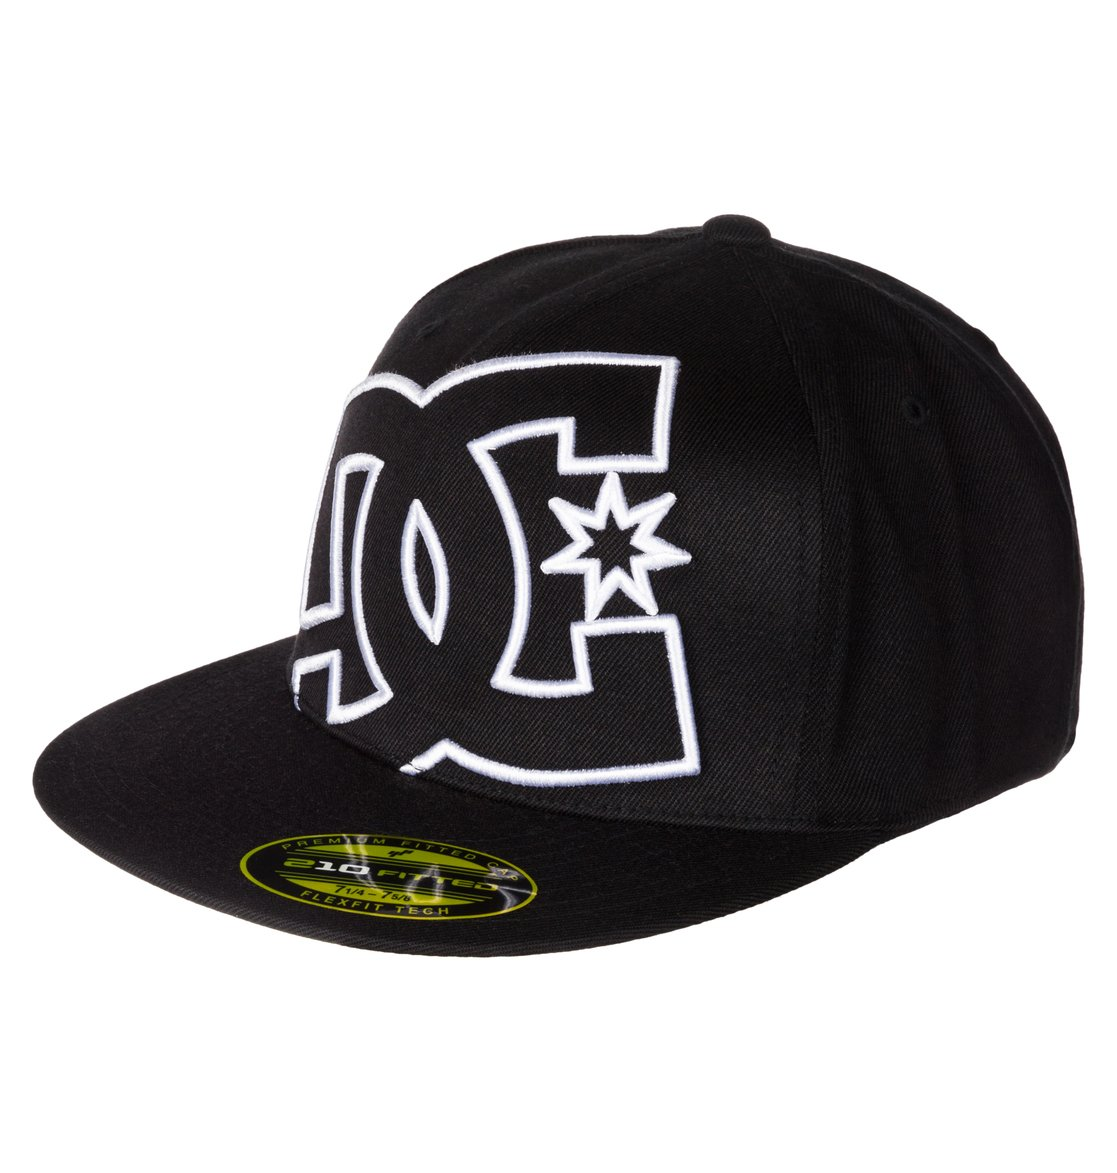 Find great deals on eBay for dc hats. Shop with confidence.